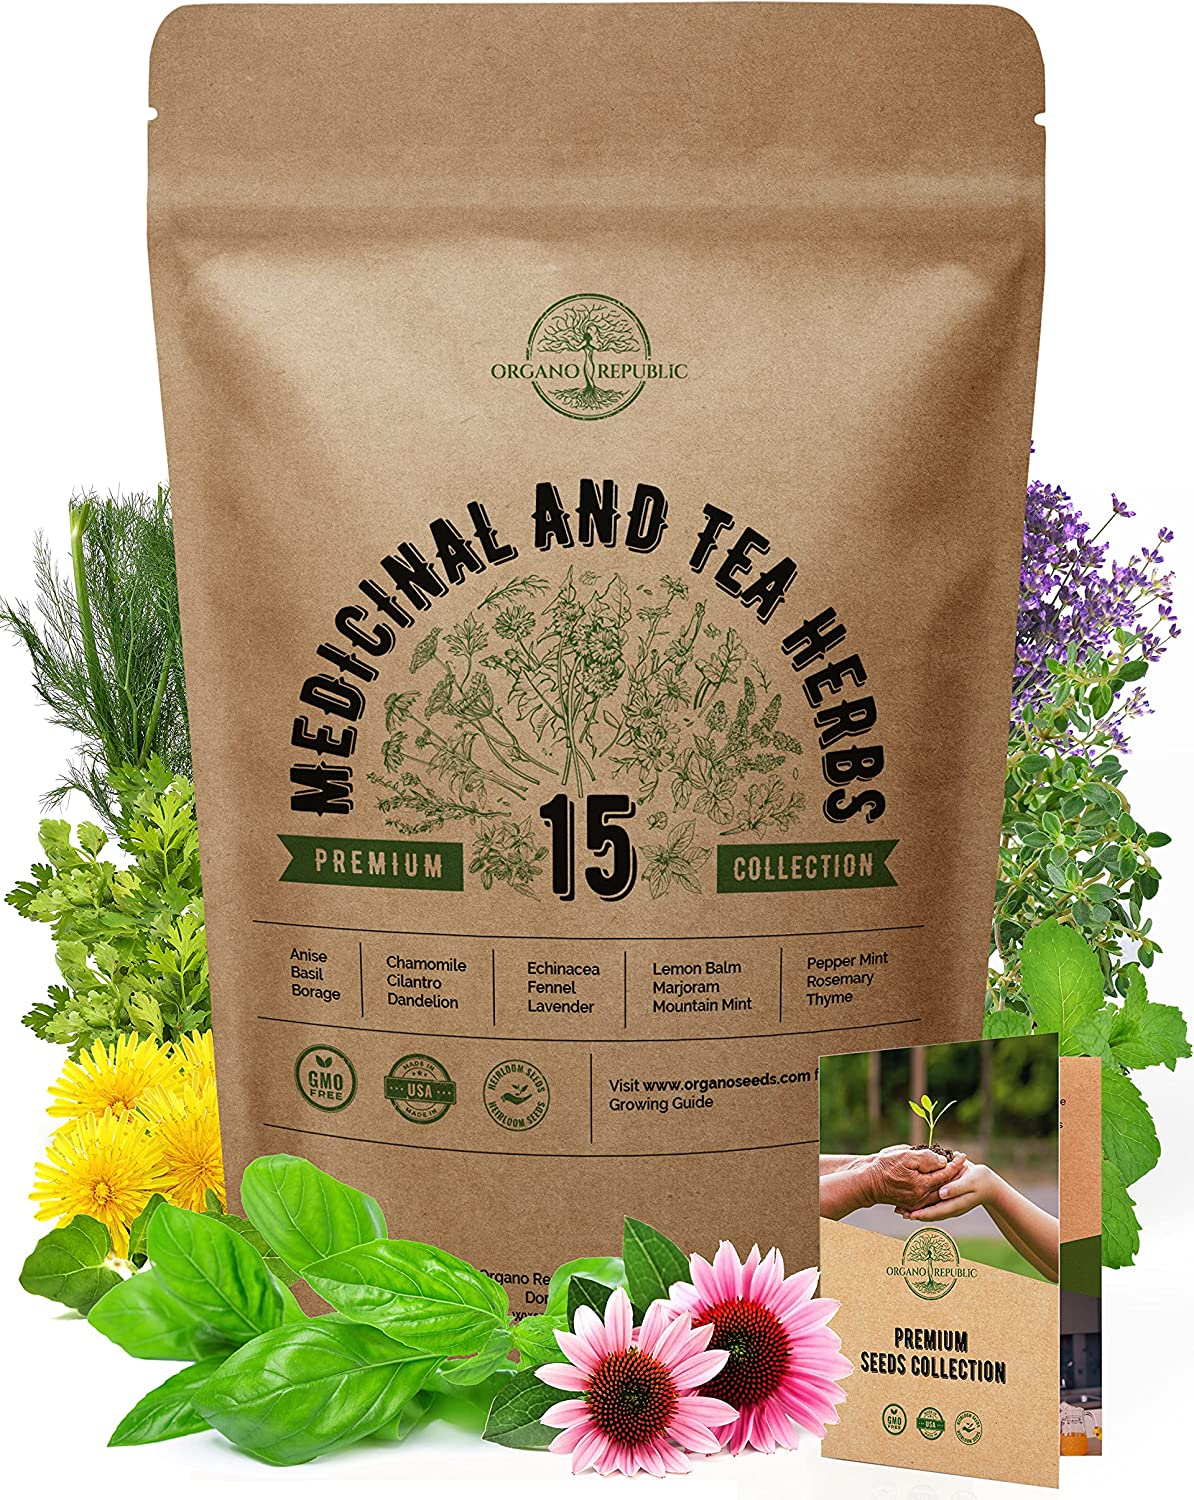 15 Medicinal & Tea Herb Seeds Variety Pack for Planting Indoor & Outdoors. 3600+ Non-GMO Heirloom Herbal Garden Seeds: Anise, Borage, Cilantro, Chamomile, Dandelion, Rosemary, Peppermint Seeds & More